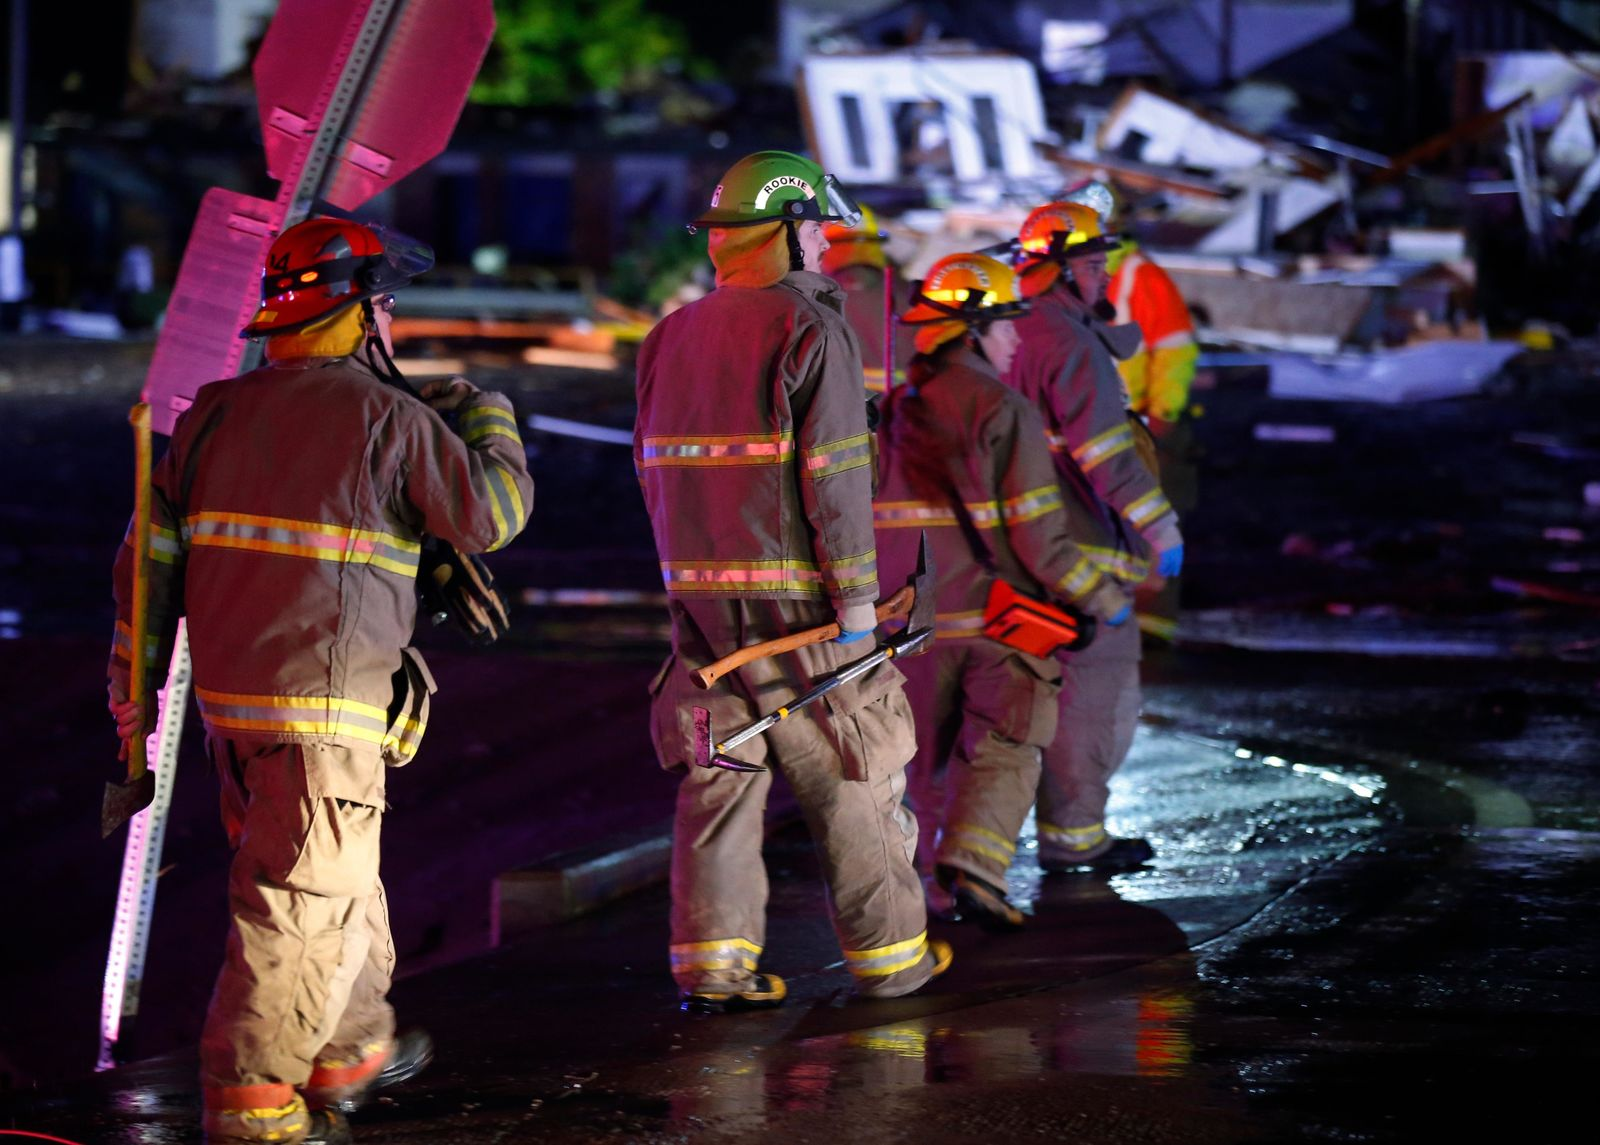 Firefighters walk to an area of debris from a hotel and a mobile home park in El Reno, Okla., Sunday, May 26, 2019, following a likely tornado touchdown late Saturday night. (AP Photo/Sue Ogrocki)